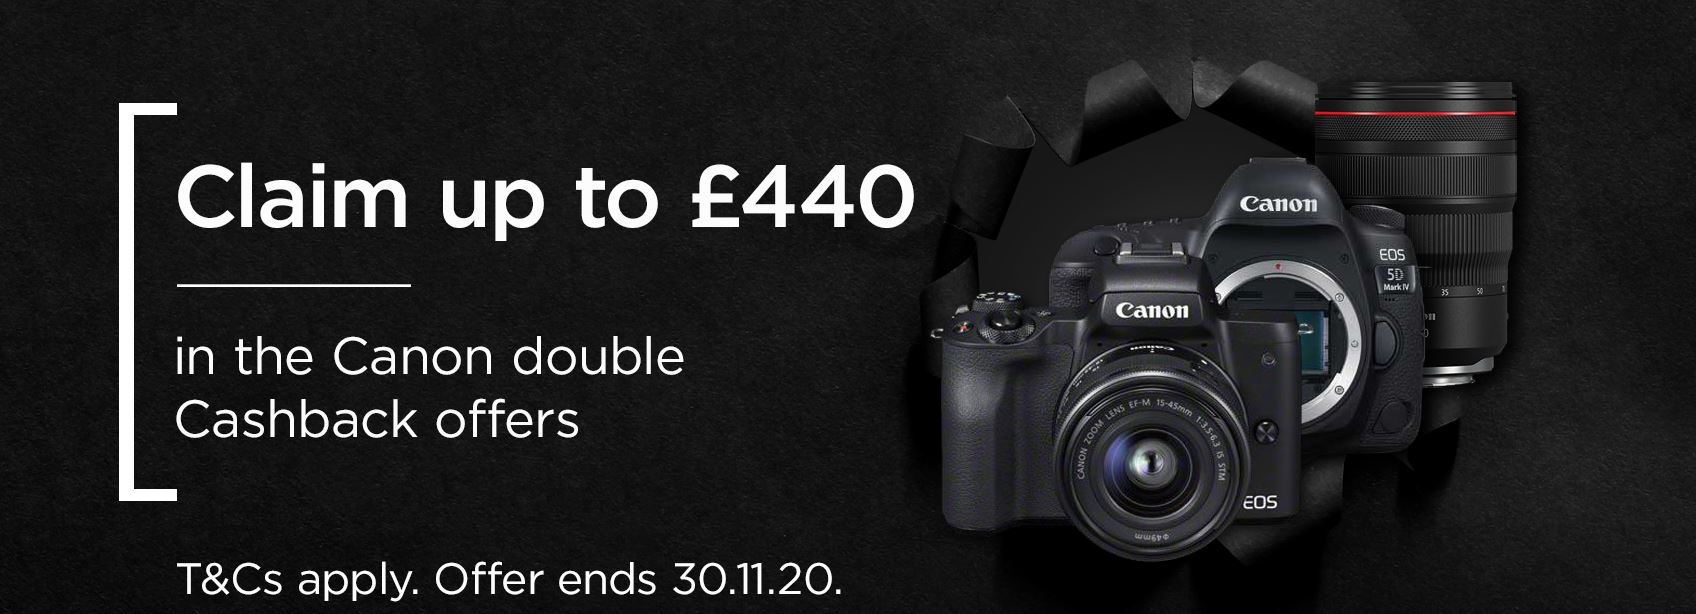 Canon double cashback | Up to £440 Cashback